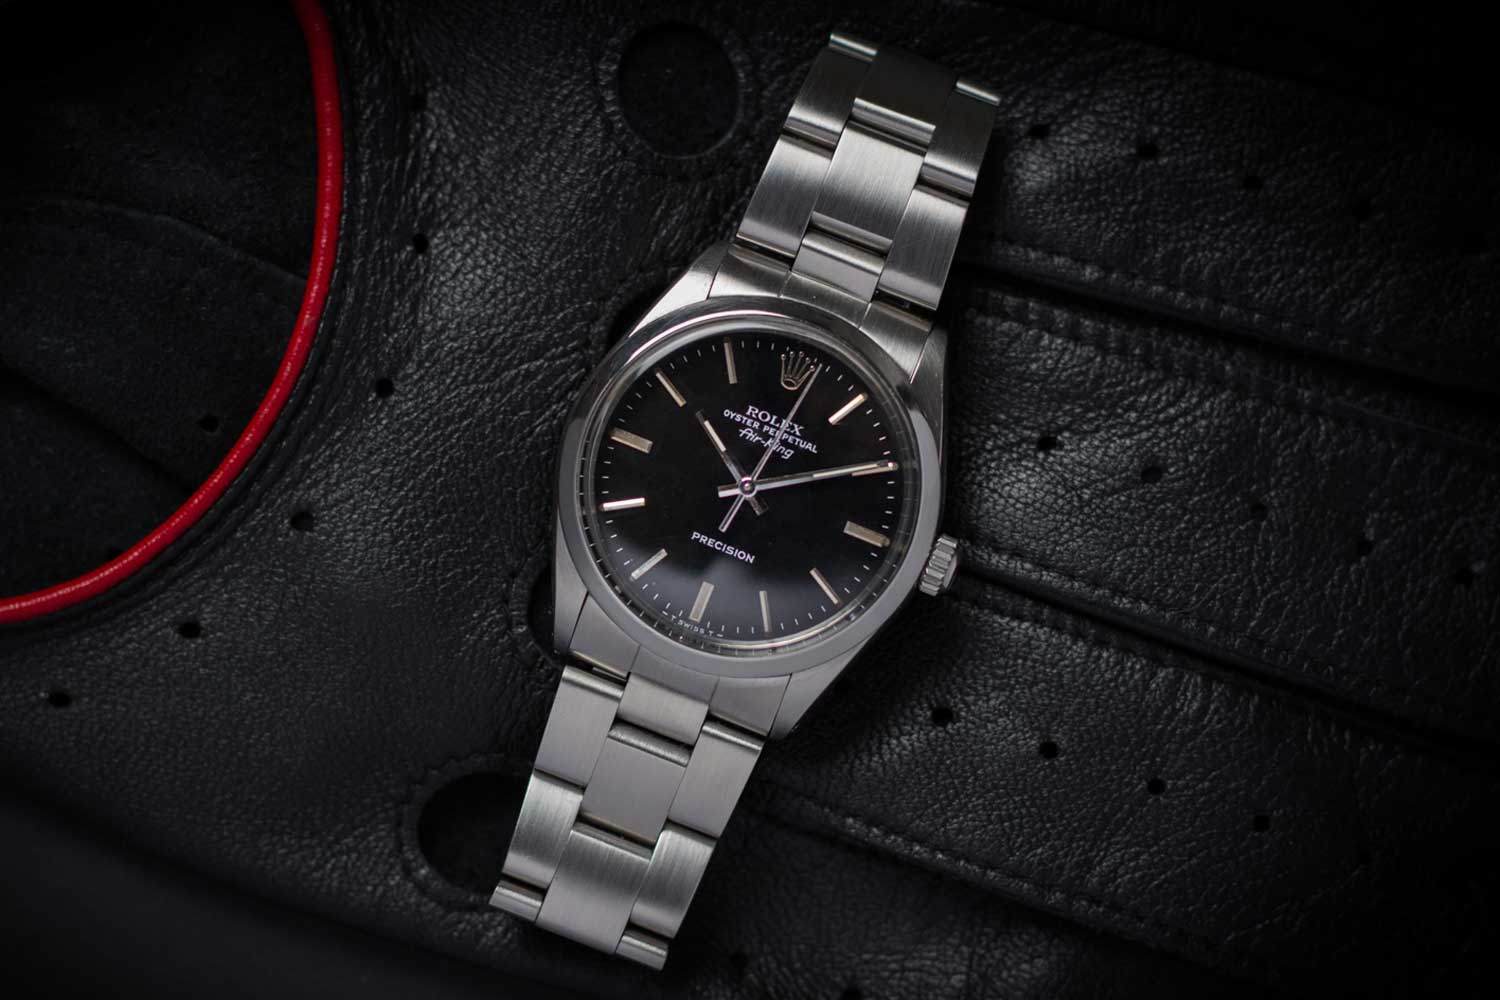 Rolex Air King ref. 5500 with a linen dial (Image: jeroenvink.net)